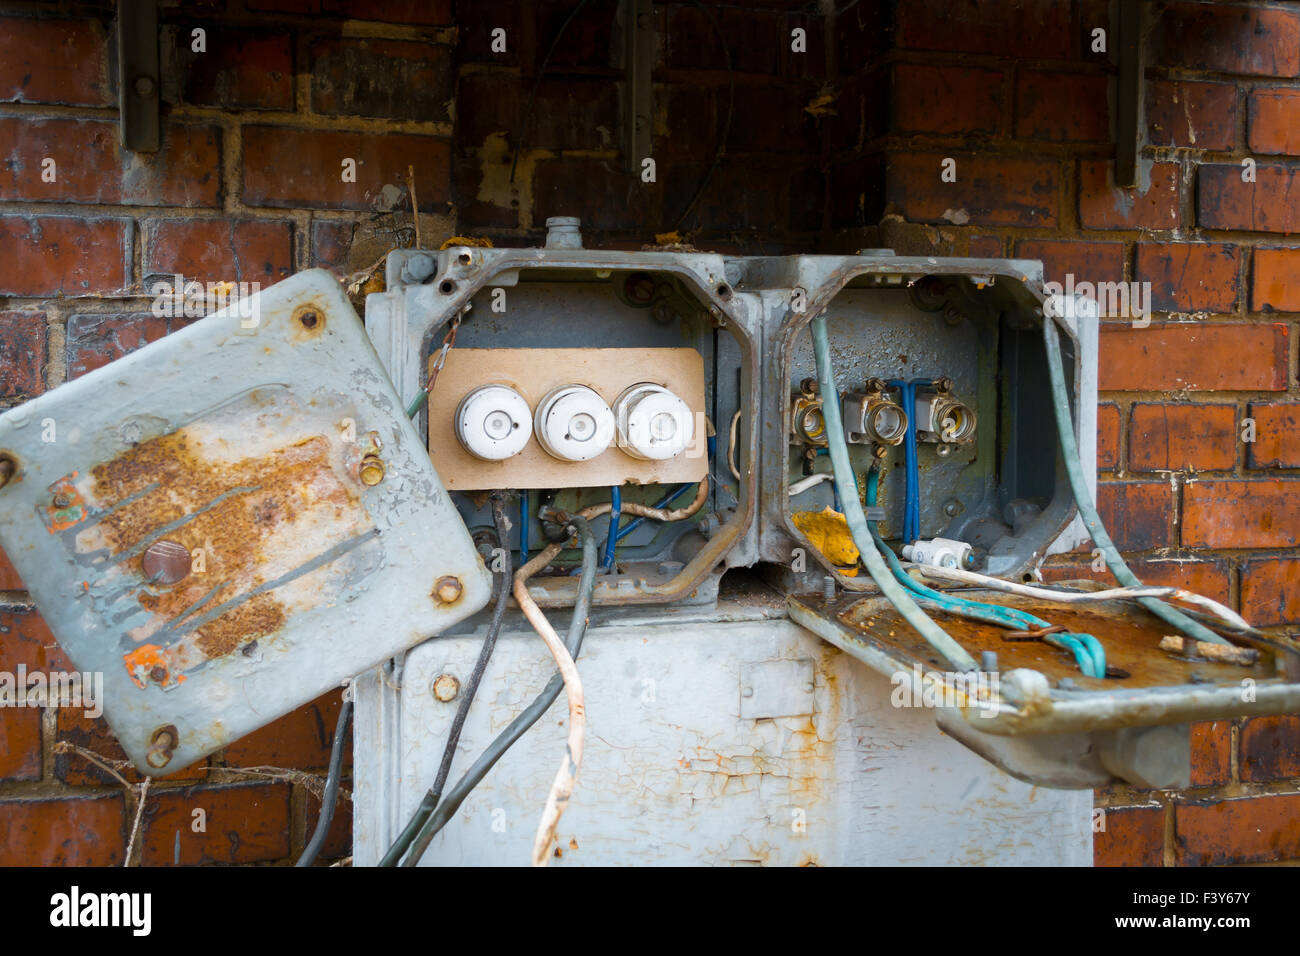 Electrical Fuse Box Rust Wiring Diagrams Old Boxes Stock Photos Details